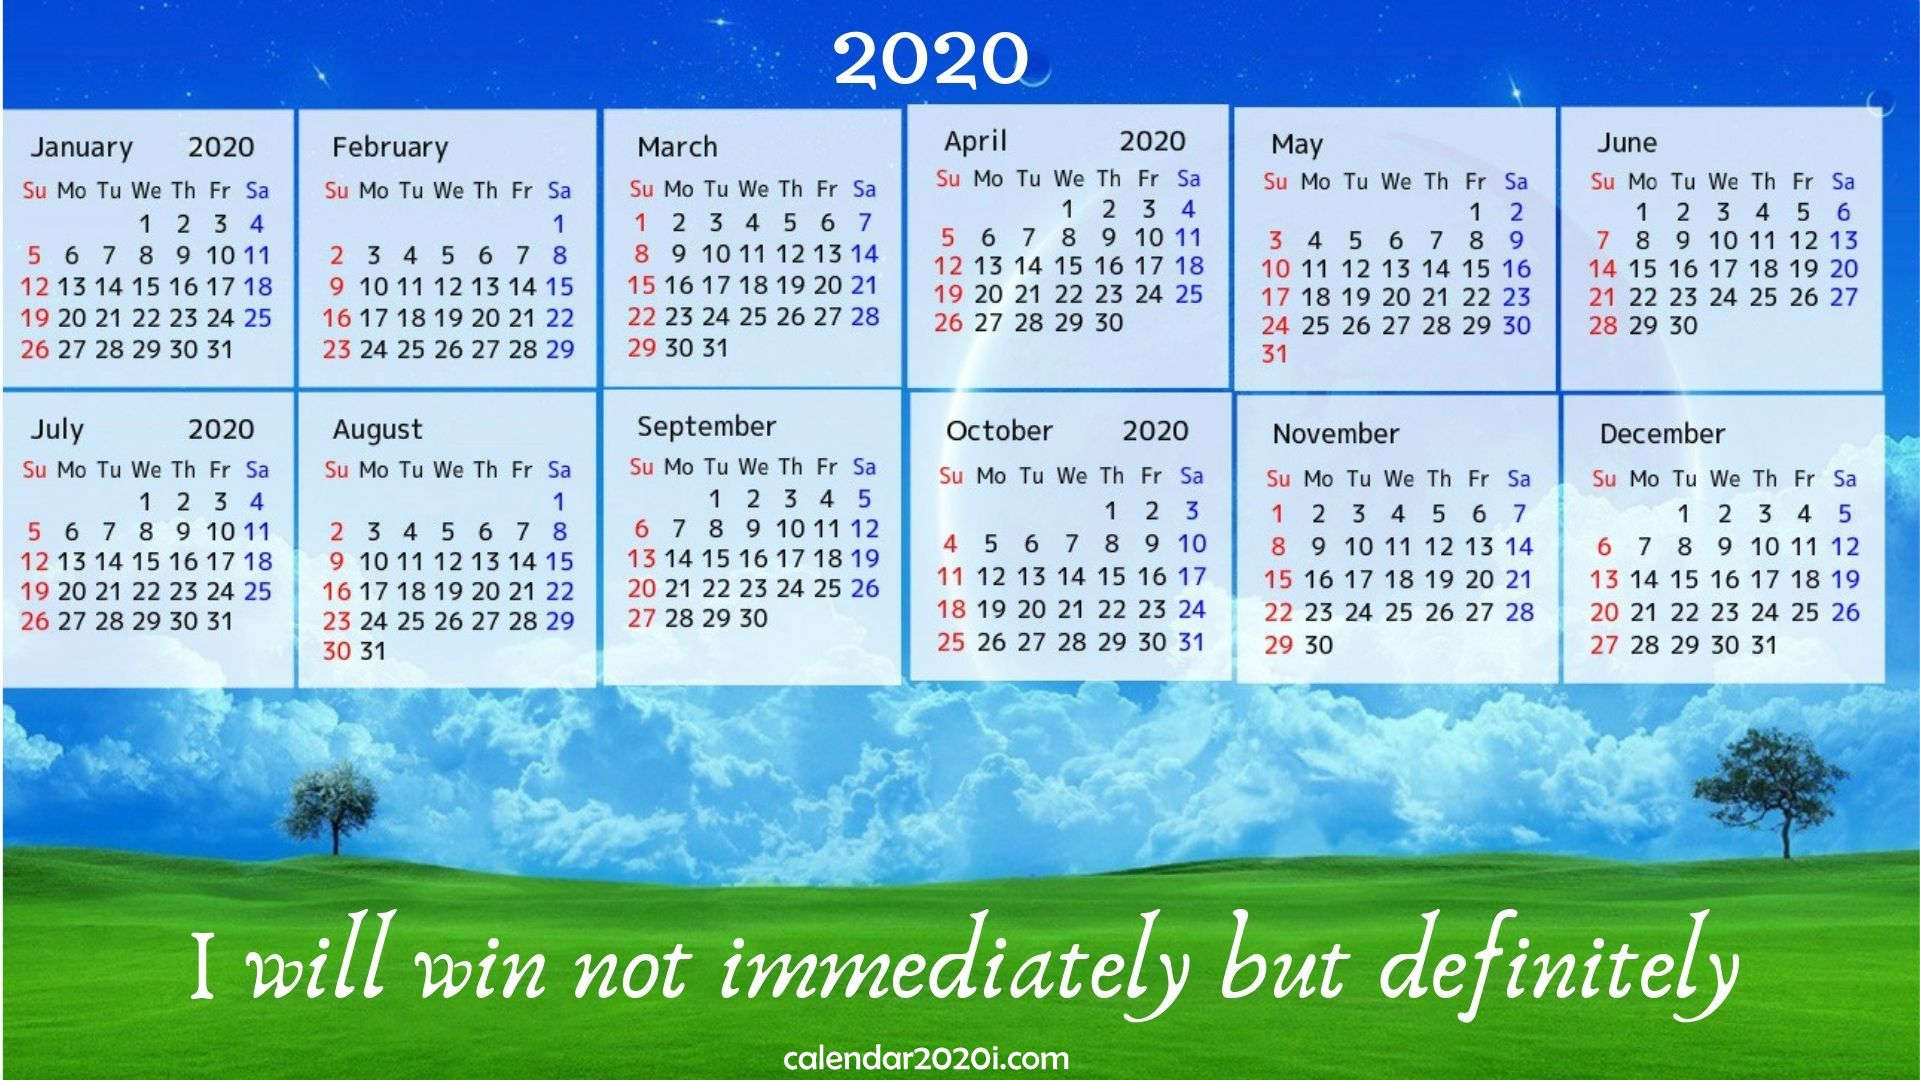 2020 Calendar With Inspirational Quotes Sayings Calendar 2020 1920x1080